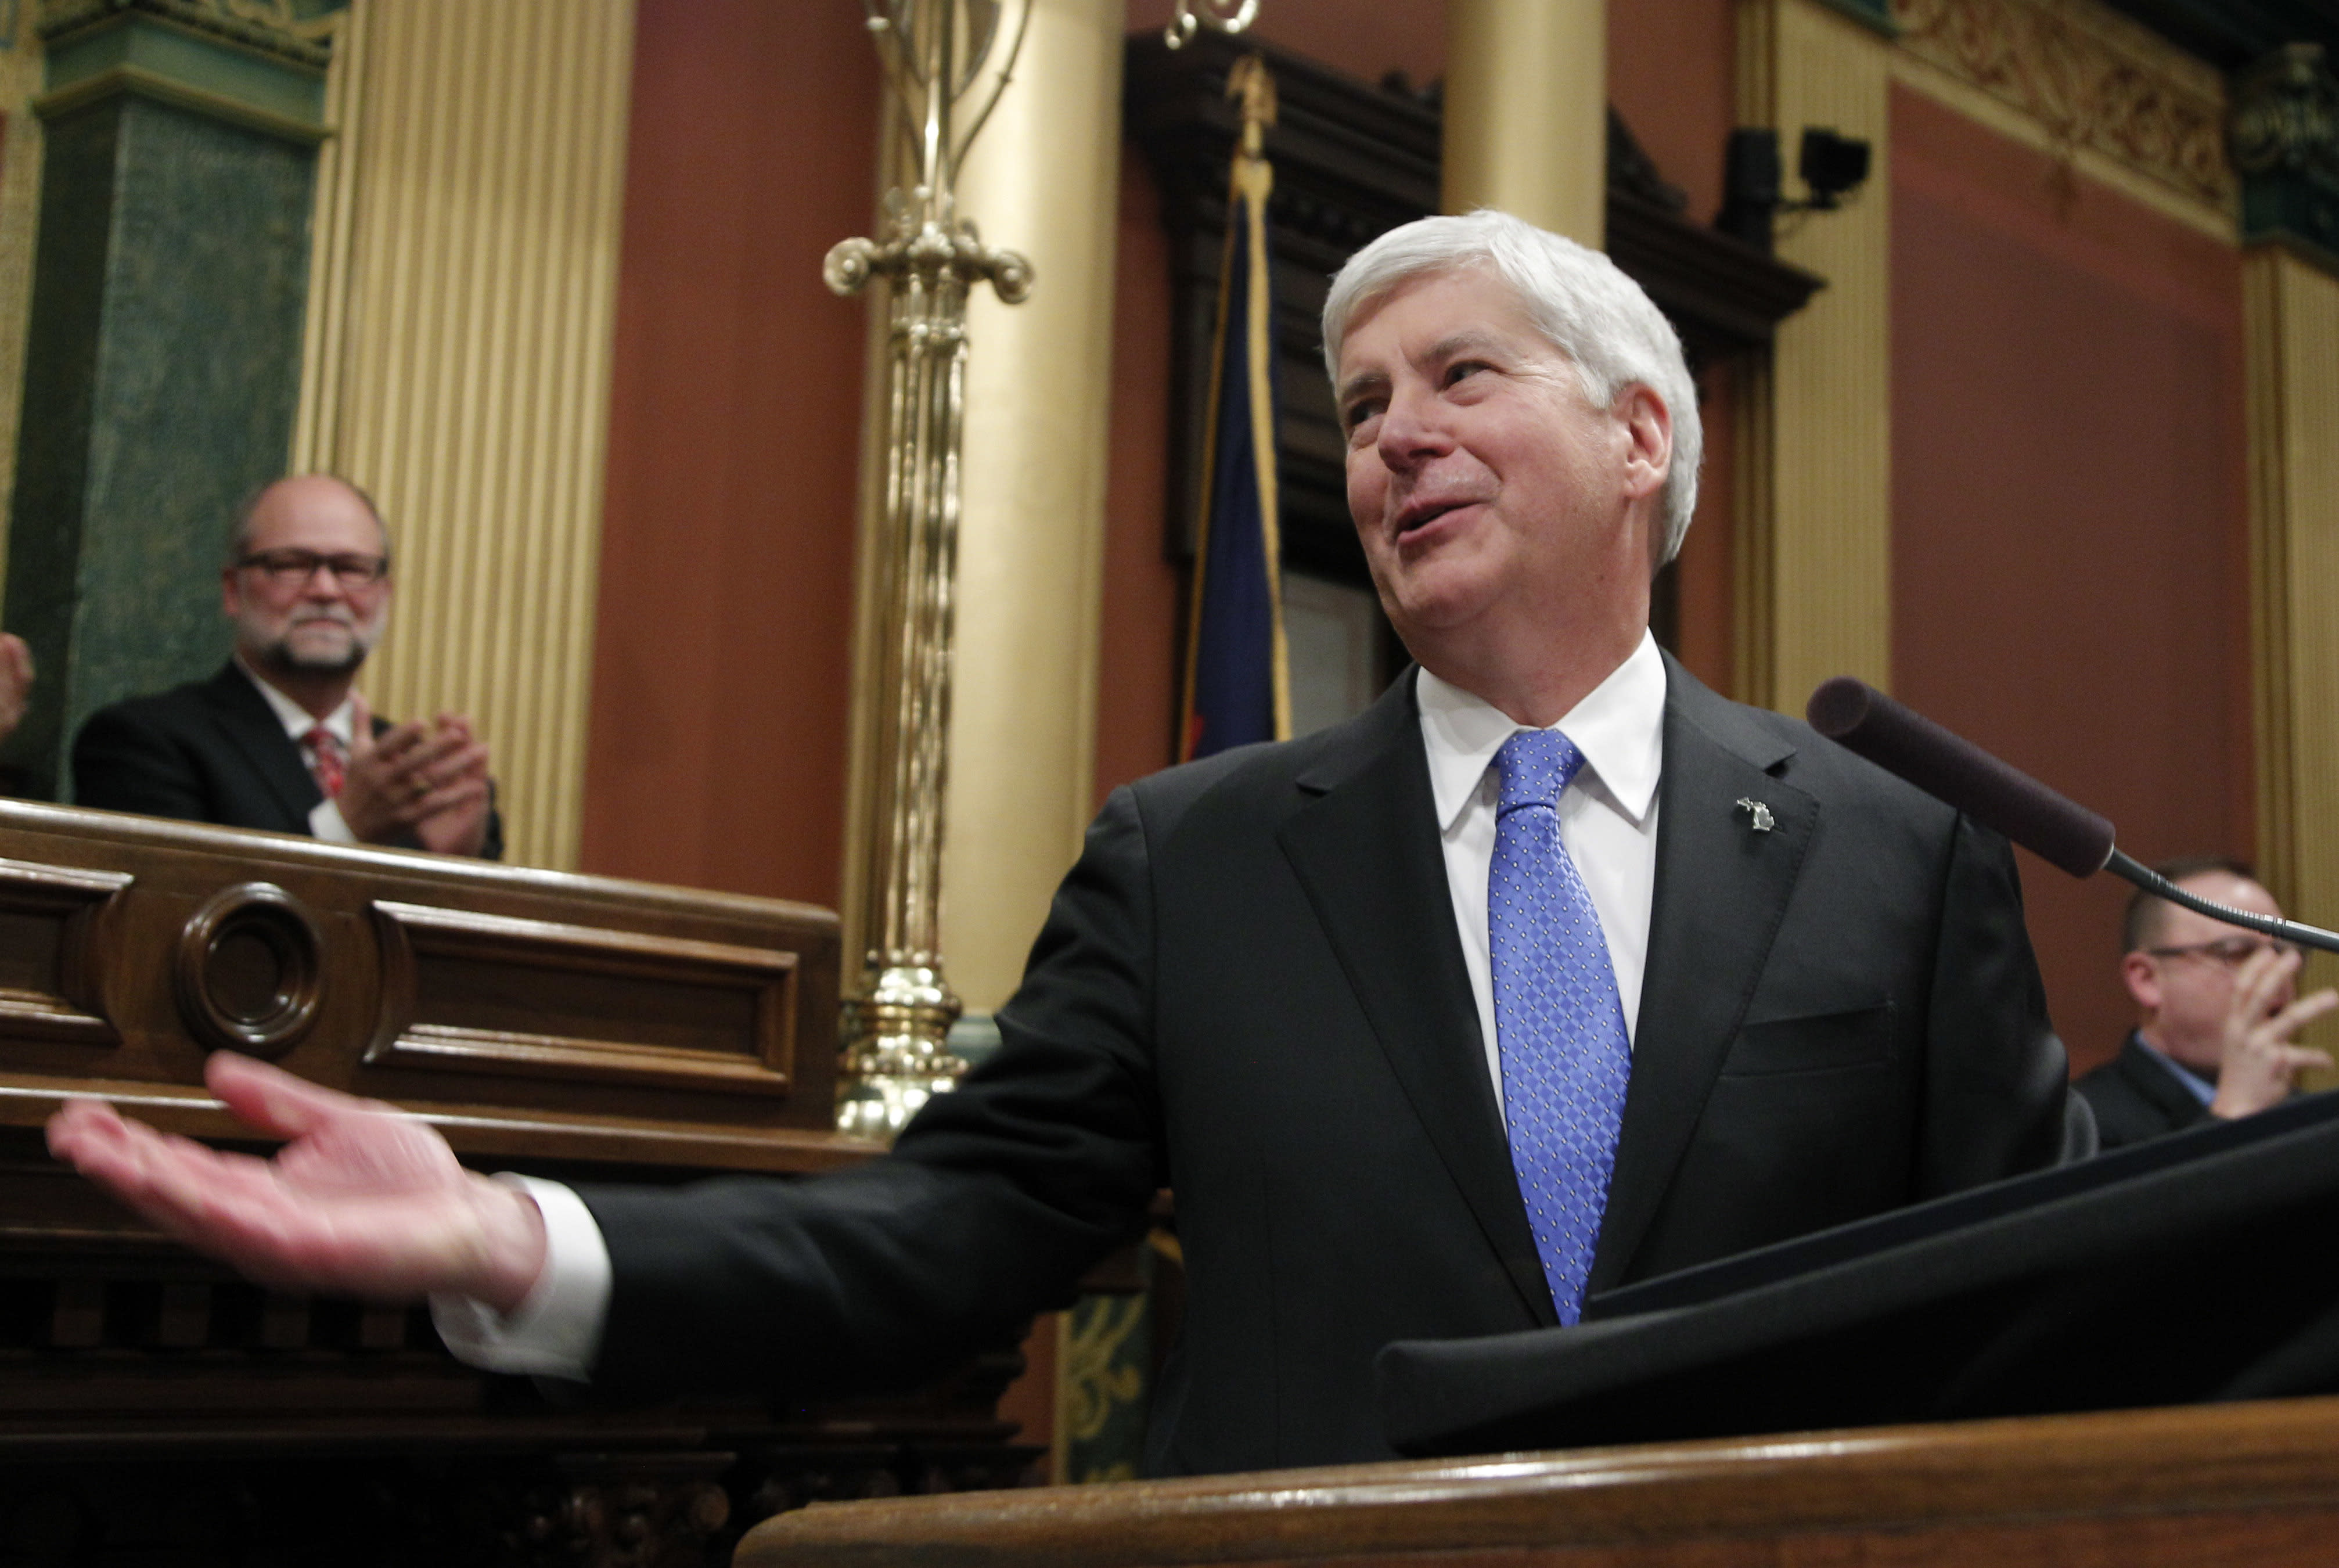 Michigan Gov. Rick Snyder addresses a joint session of the House and Senate at the state Capitol in Lansing, Mich. Braced for a new era of divided government, lame-duck Republicans who have long controlled two upper Midwest states are priming last-ditch laws to advance their conservative agenda or to weaken the influence of Democratic governors-elect. The moves, which may spark lawsuits if they come to pass, would follow midterm elections in which Democrats swept statewide offices in Michigan and Wisconsin for the first time in decades but fell short of taking over gerrymandered legislatures. (AP Photo/Al Goldis)